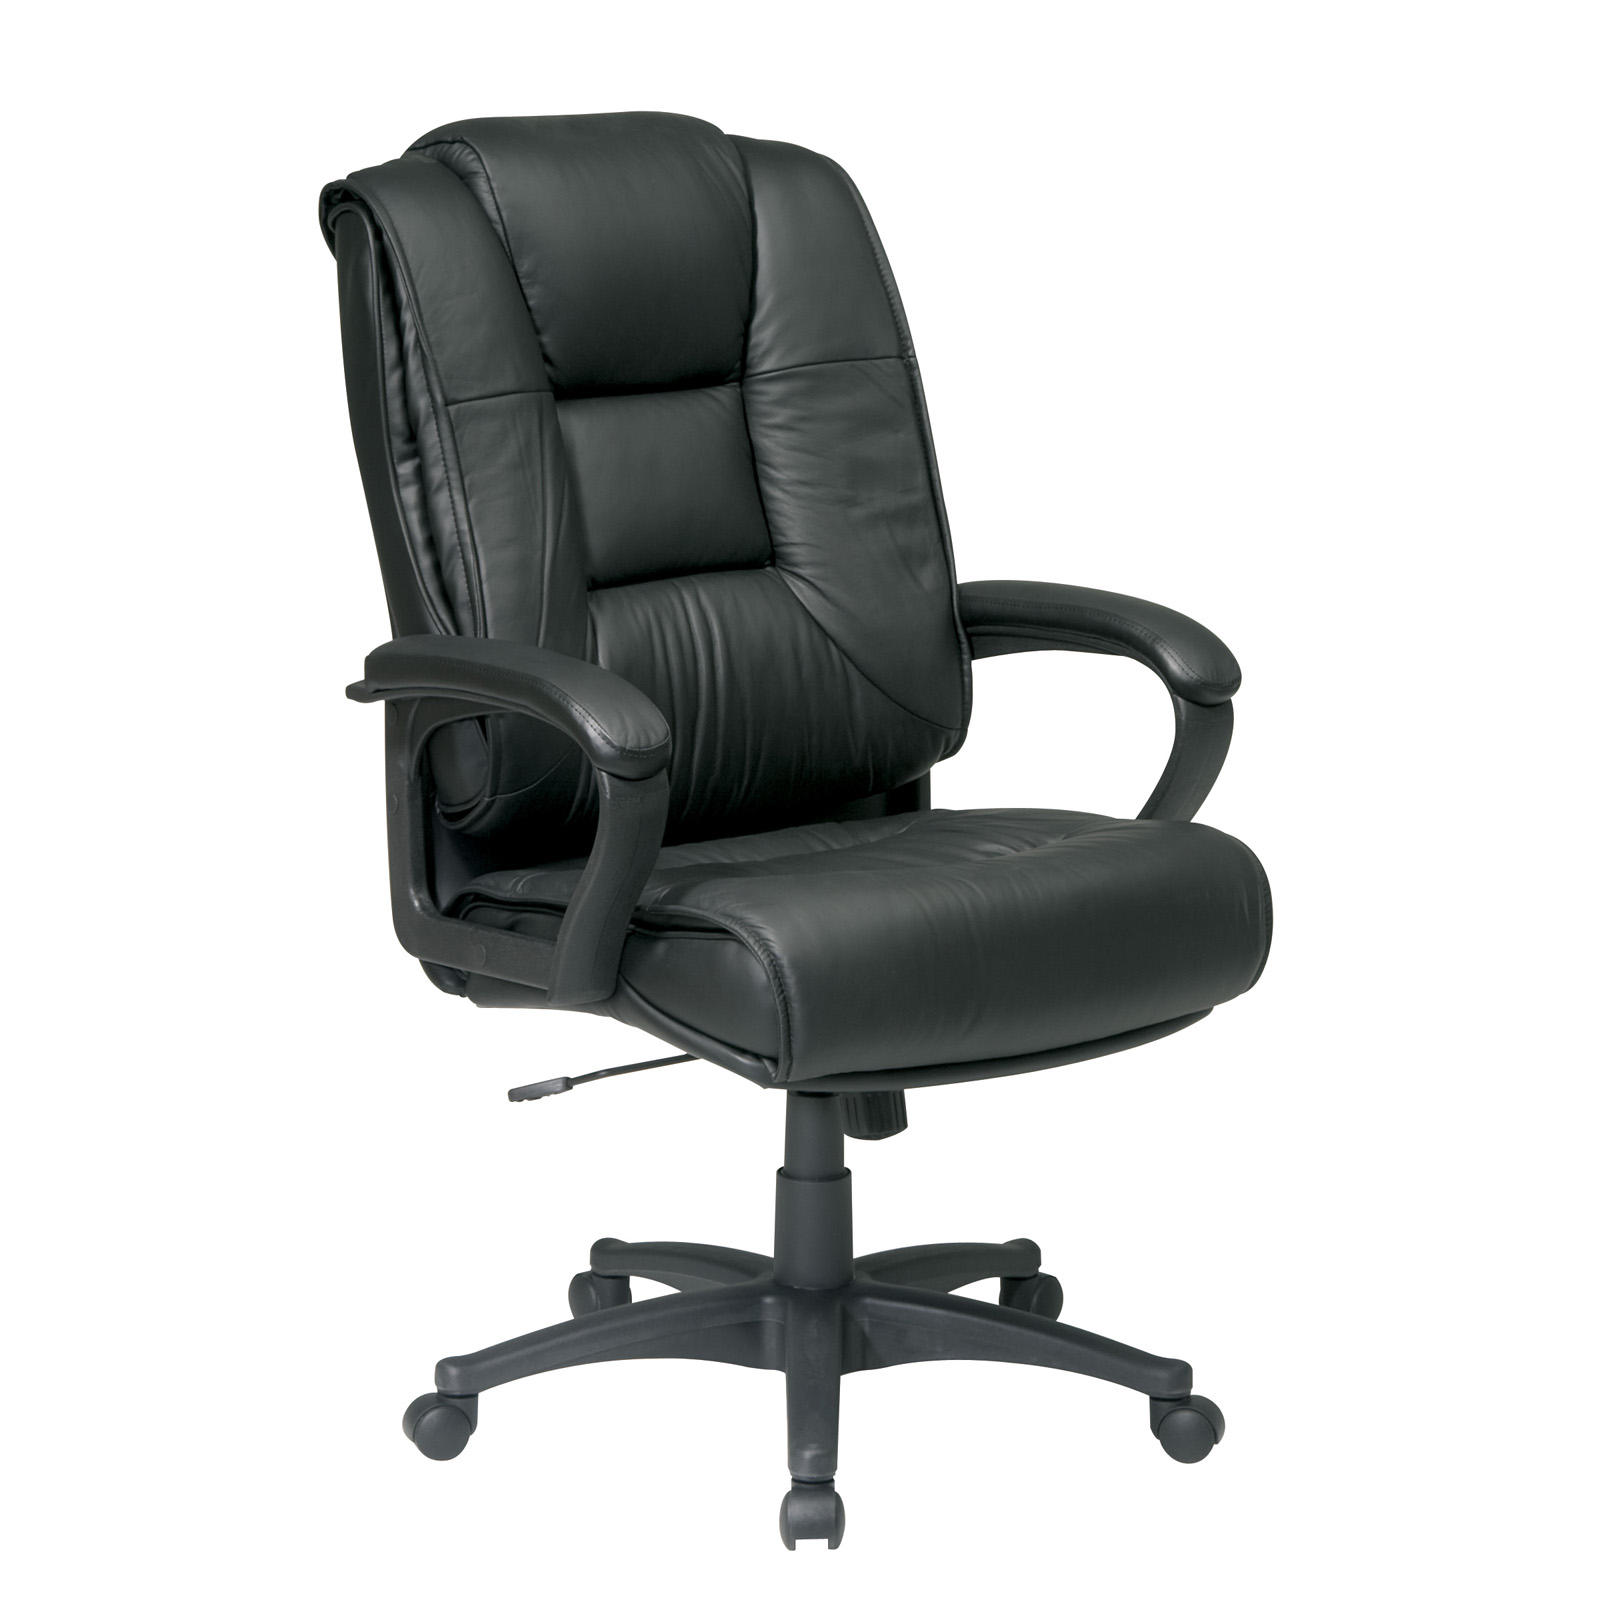 Work Chair Deluxe High Back Glove Soft Leather Chair By Office Star